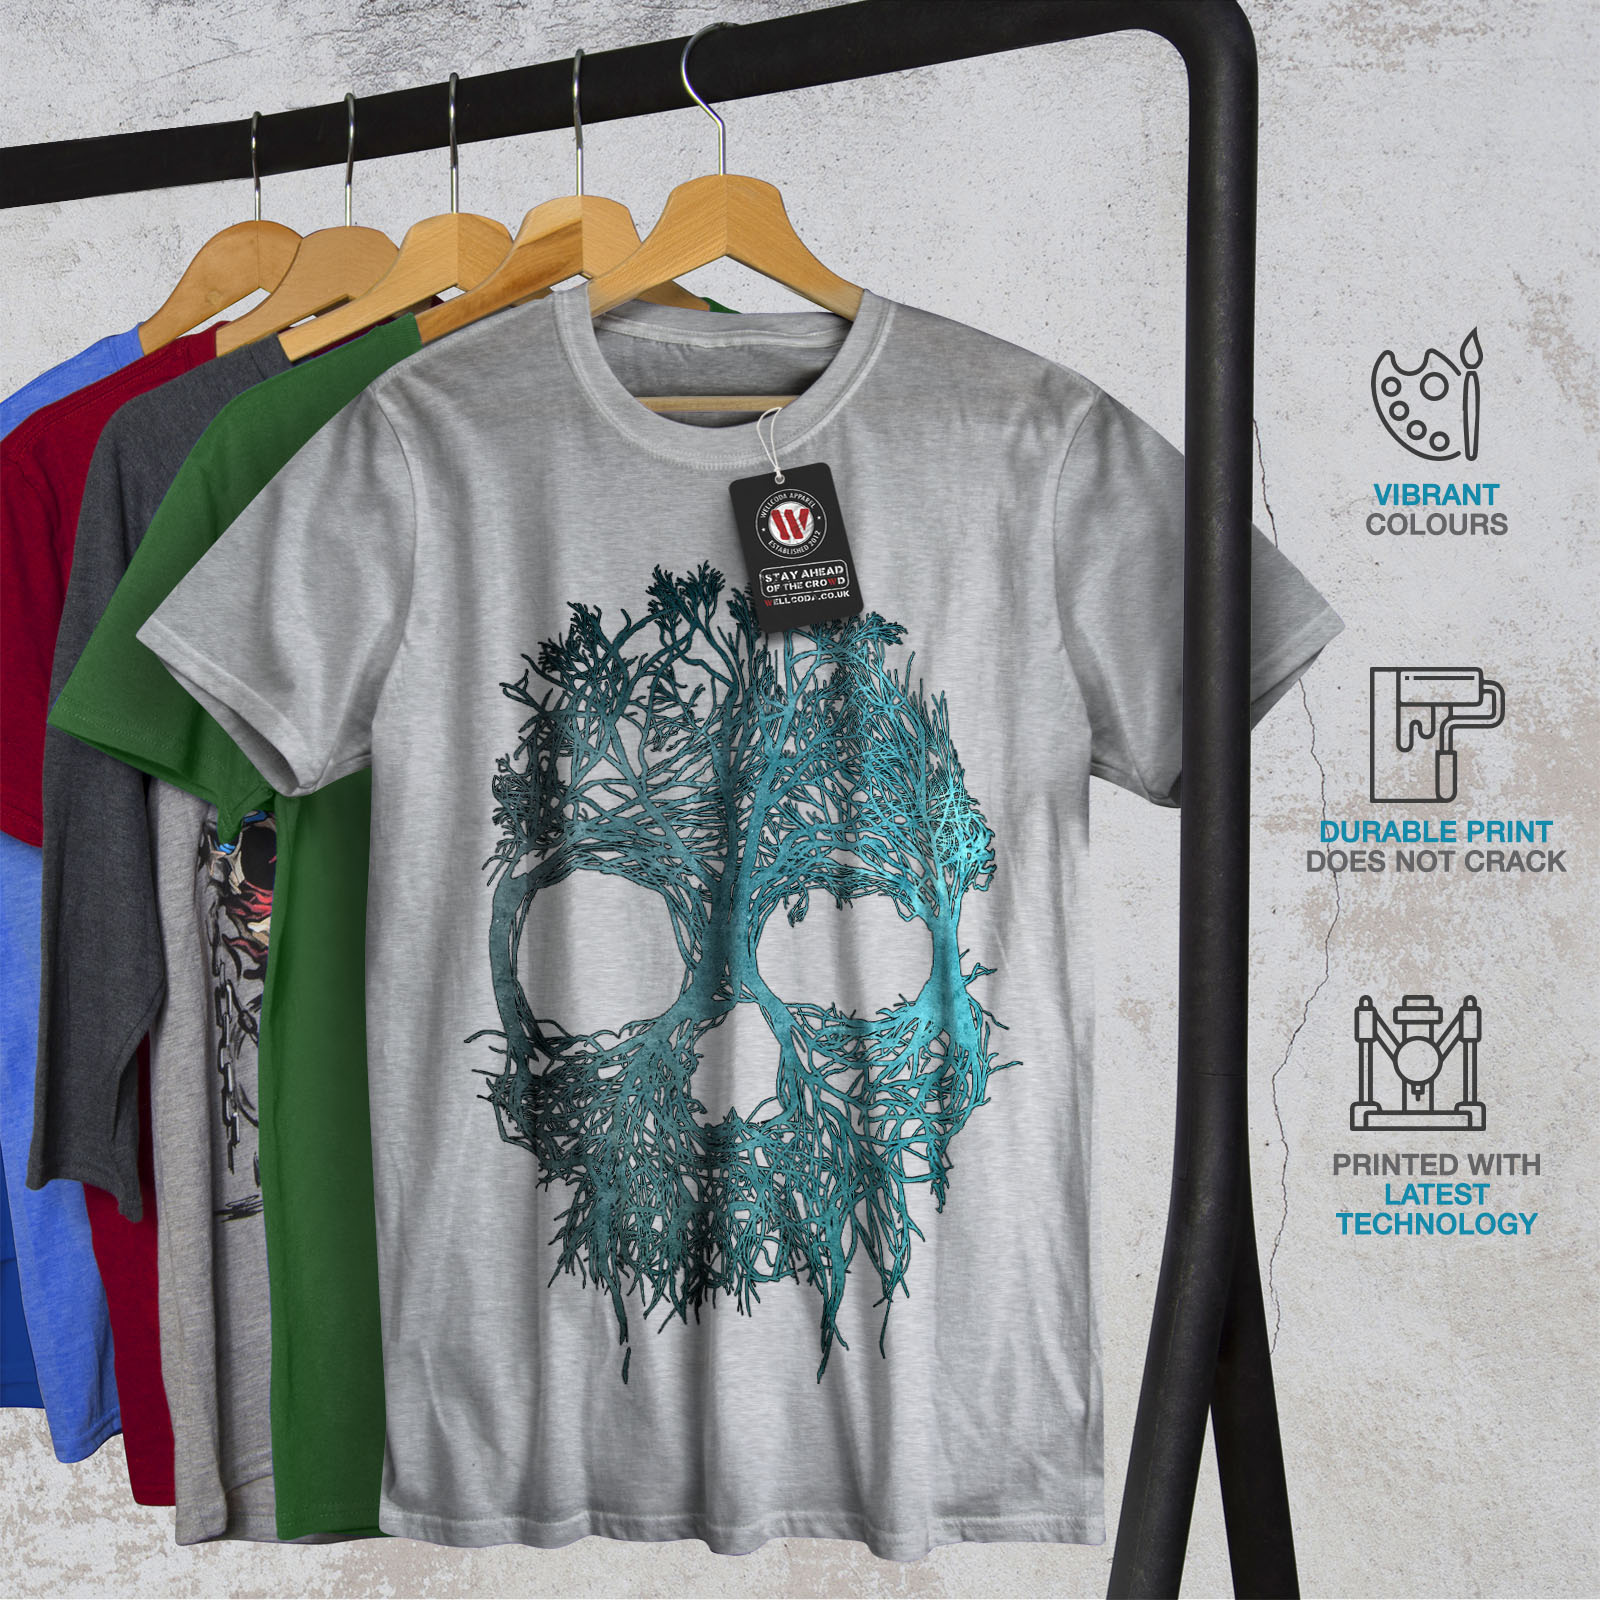 Men's Clothing Wellcoda Nature Tree Metal Skull Mens T-shirt Clothing, Shoes & Accessories Angel Graphic Design Printed Tee